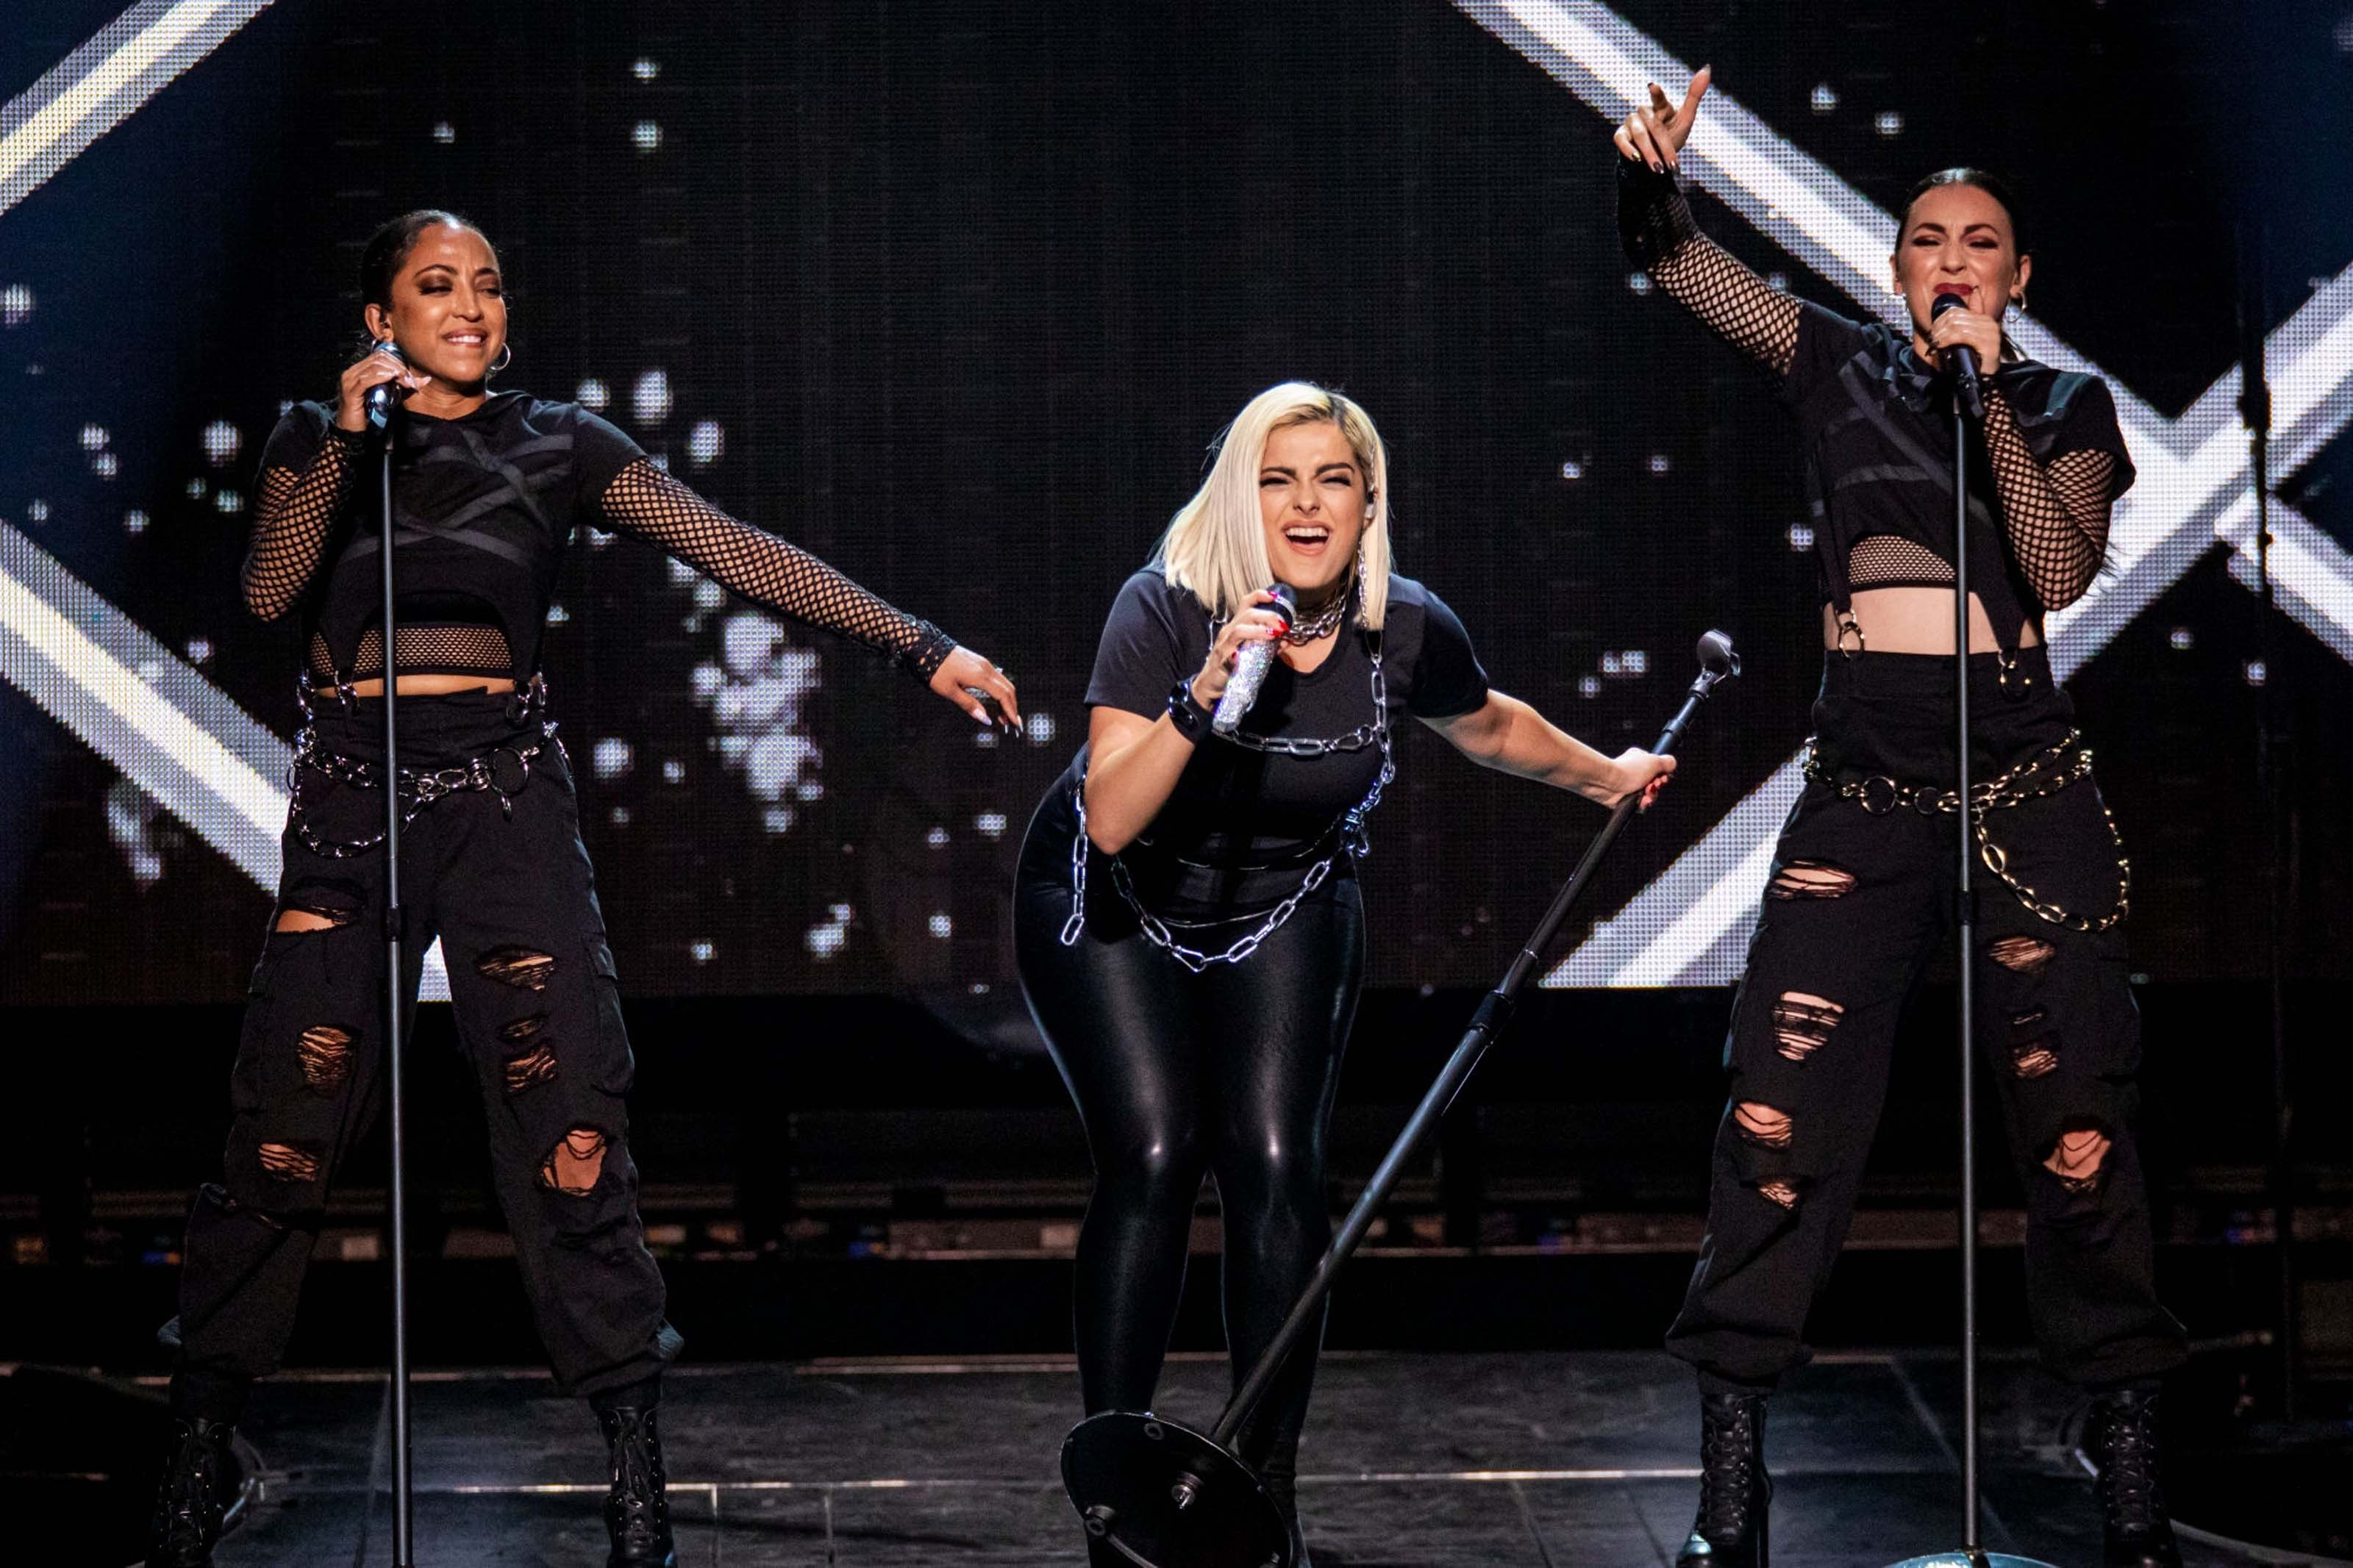 Bebe Rexha performs during The Jonas Brothers 'Happiness Begins' Tour